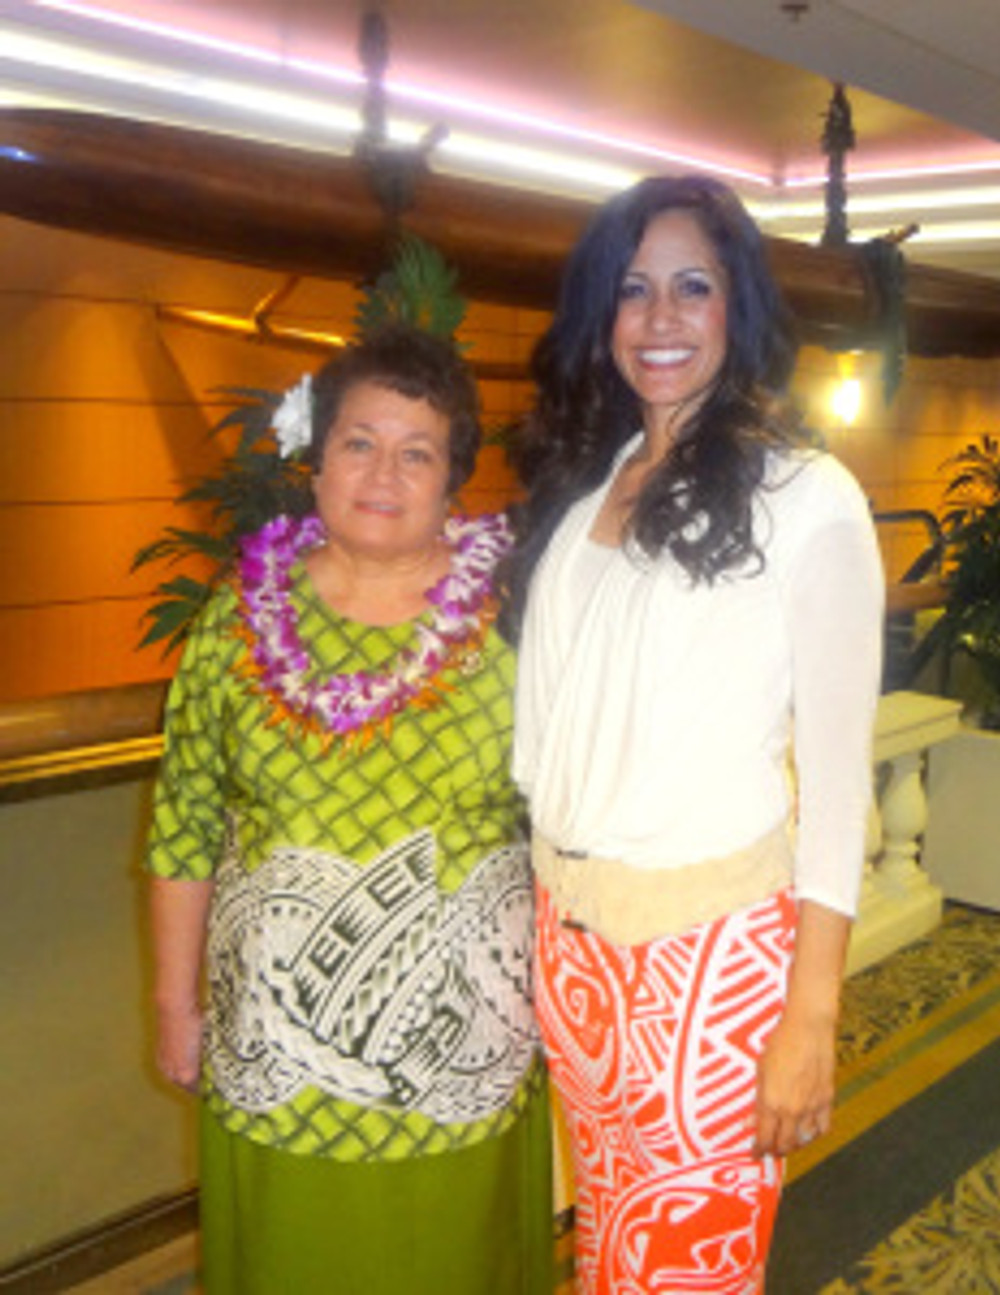 Congresswomam Aumau Amata and Rep Tupola